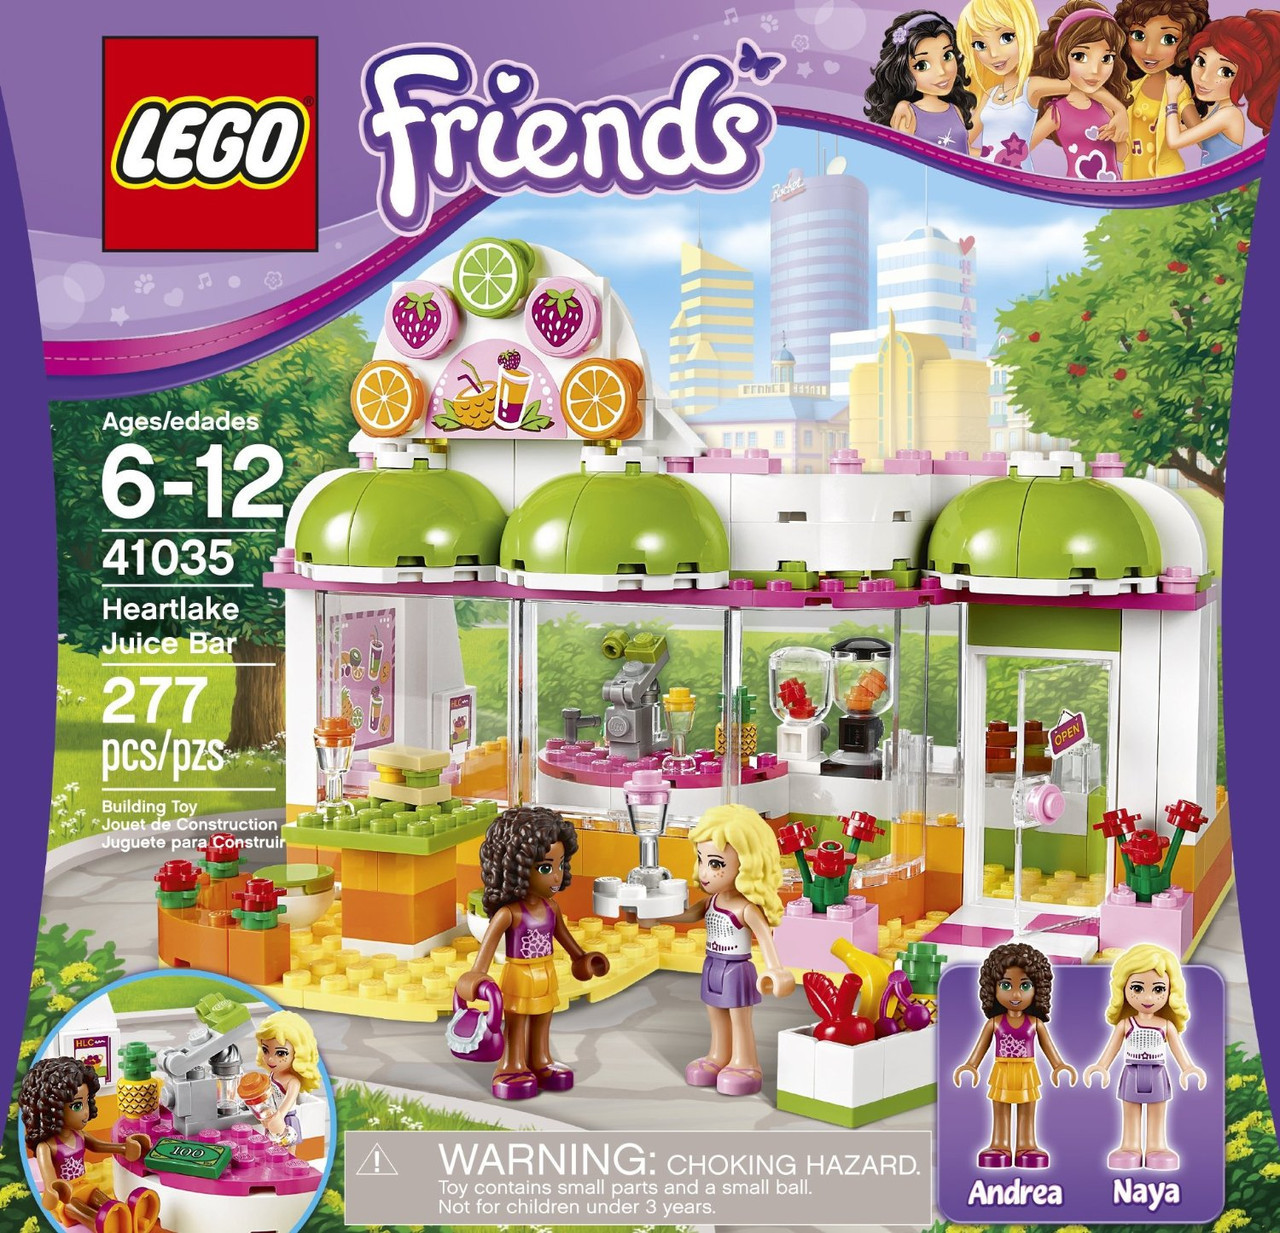 LEGO Friends Фреш-бар Хартлейк Сити 41035